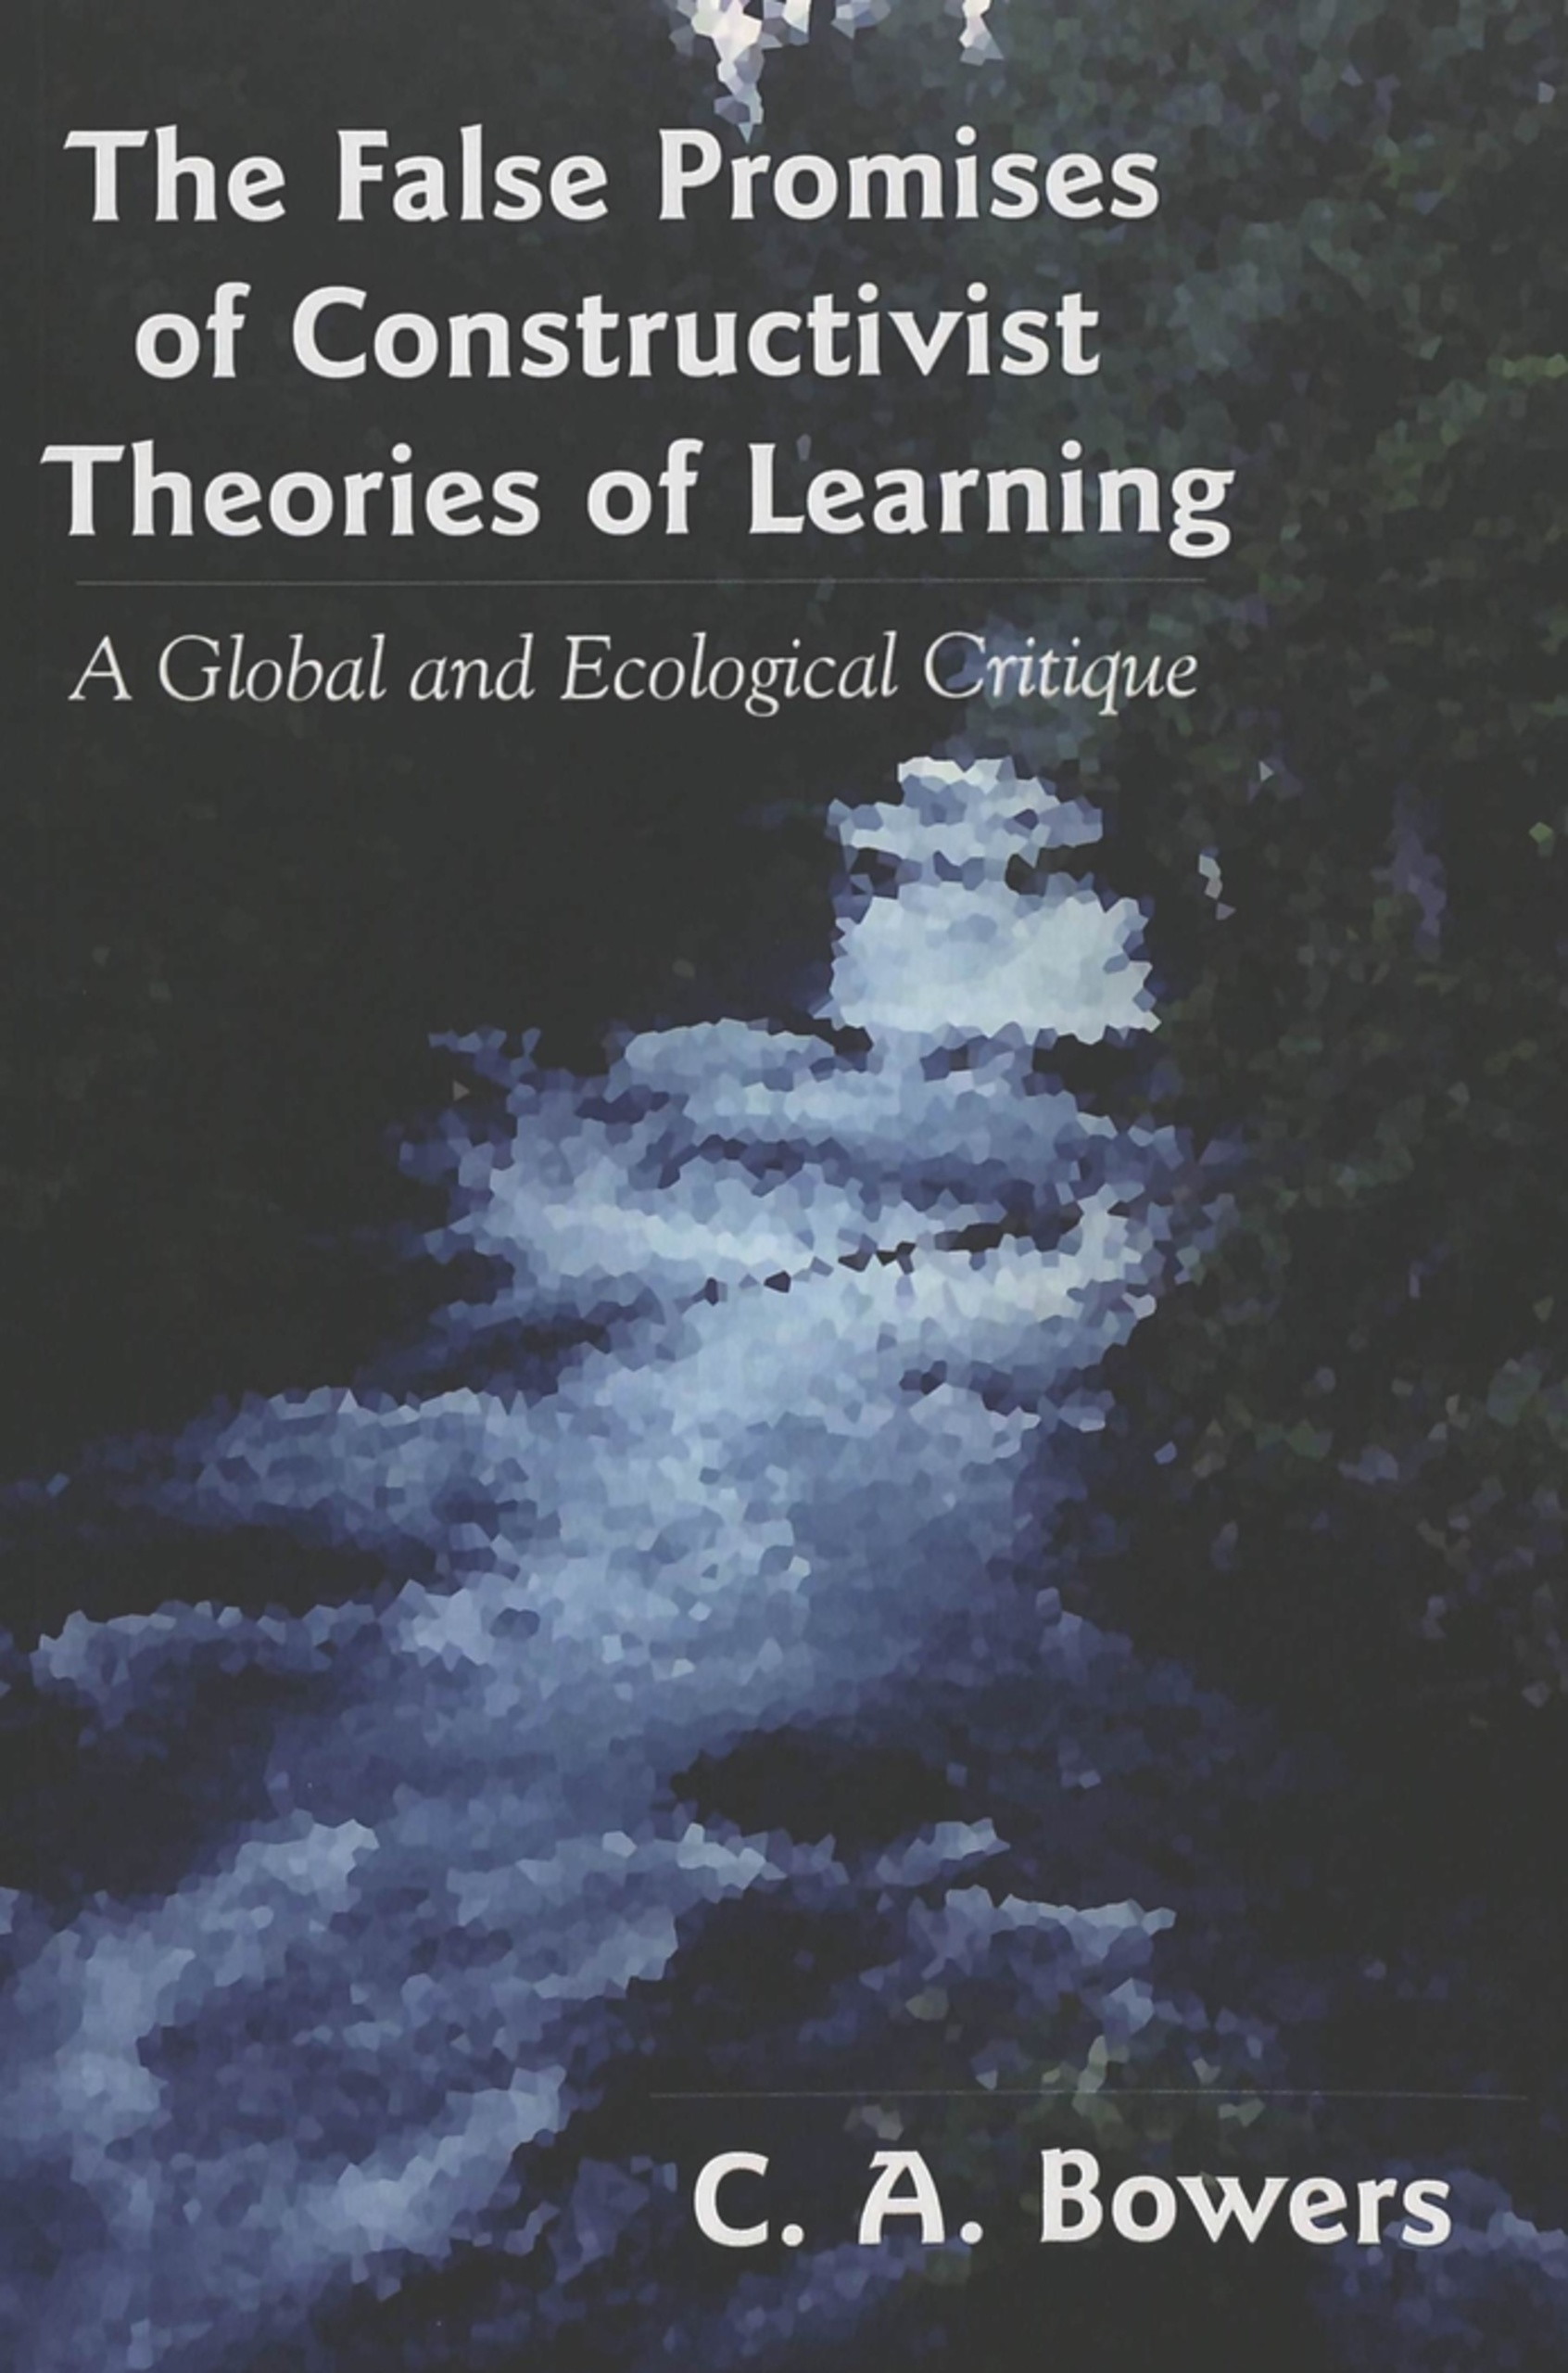 Title: The False Promises of Constructivist Theories of Learning